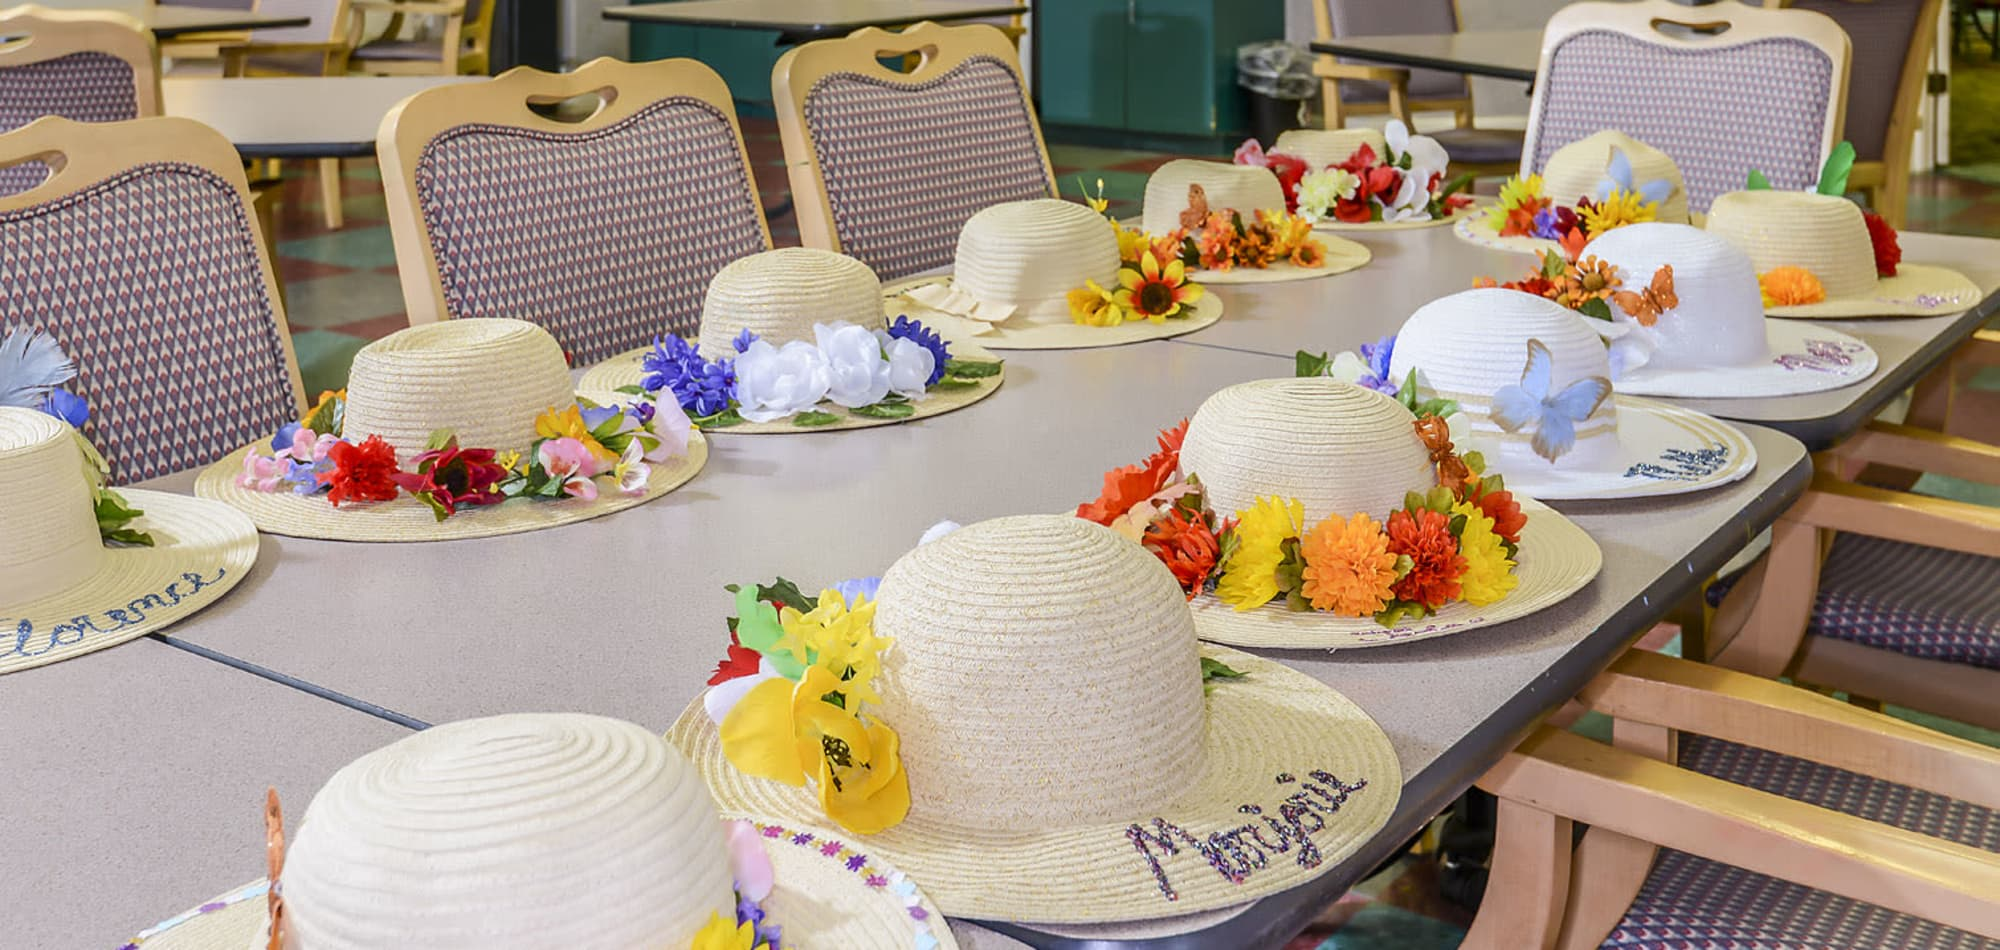 Arts and crafts activities for residents of Arbor Oaks at Tyrone in St Petersburg, Florida